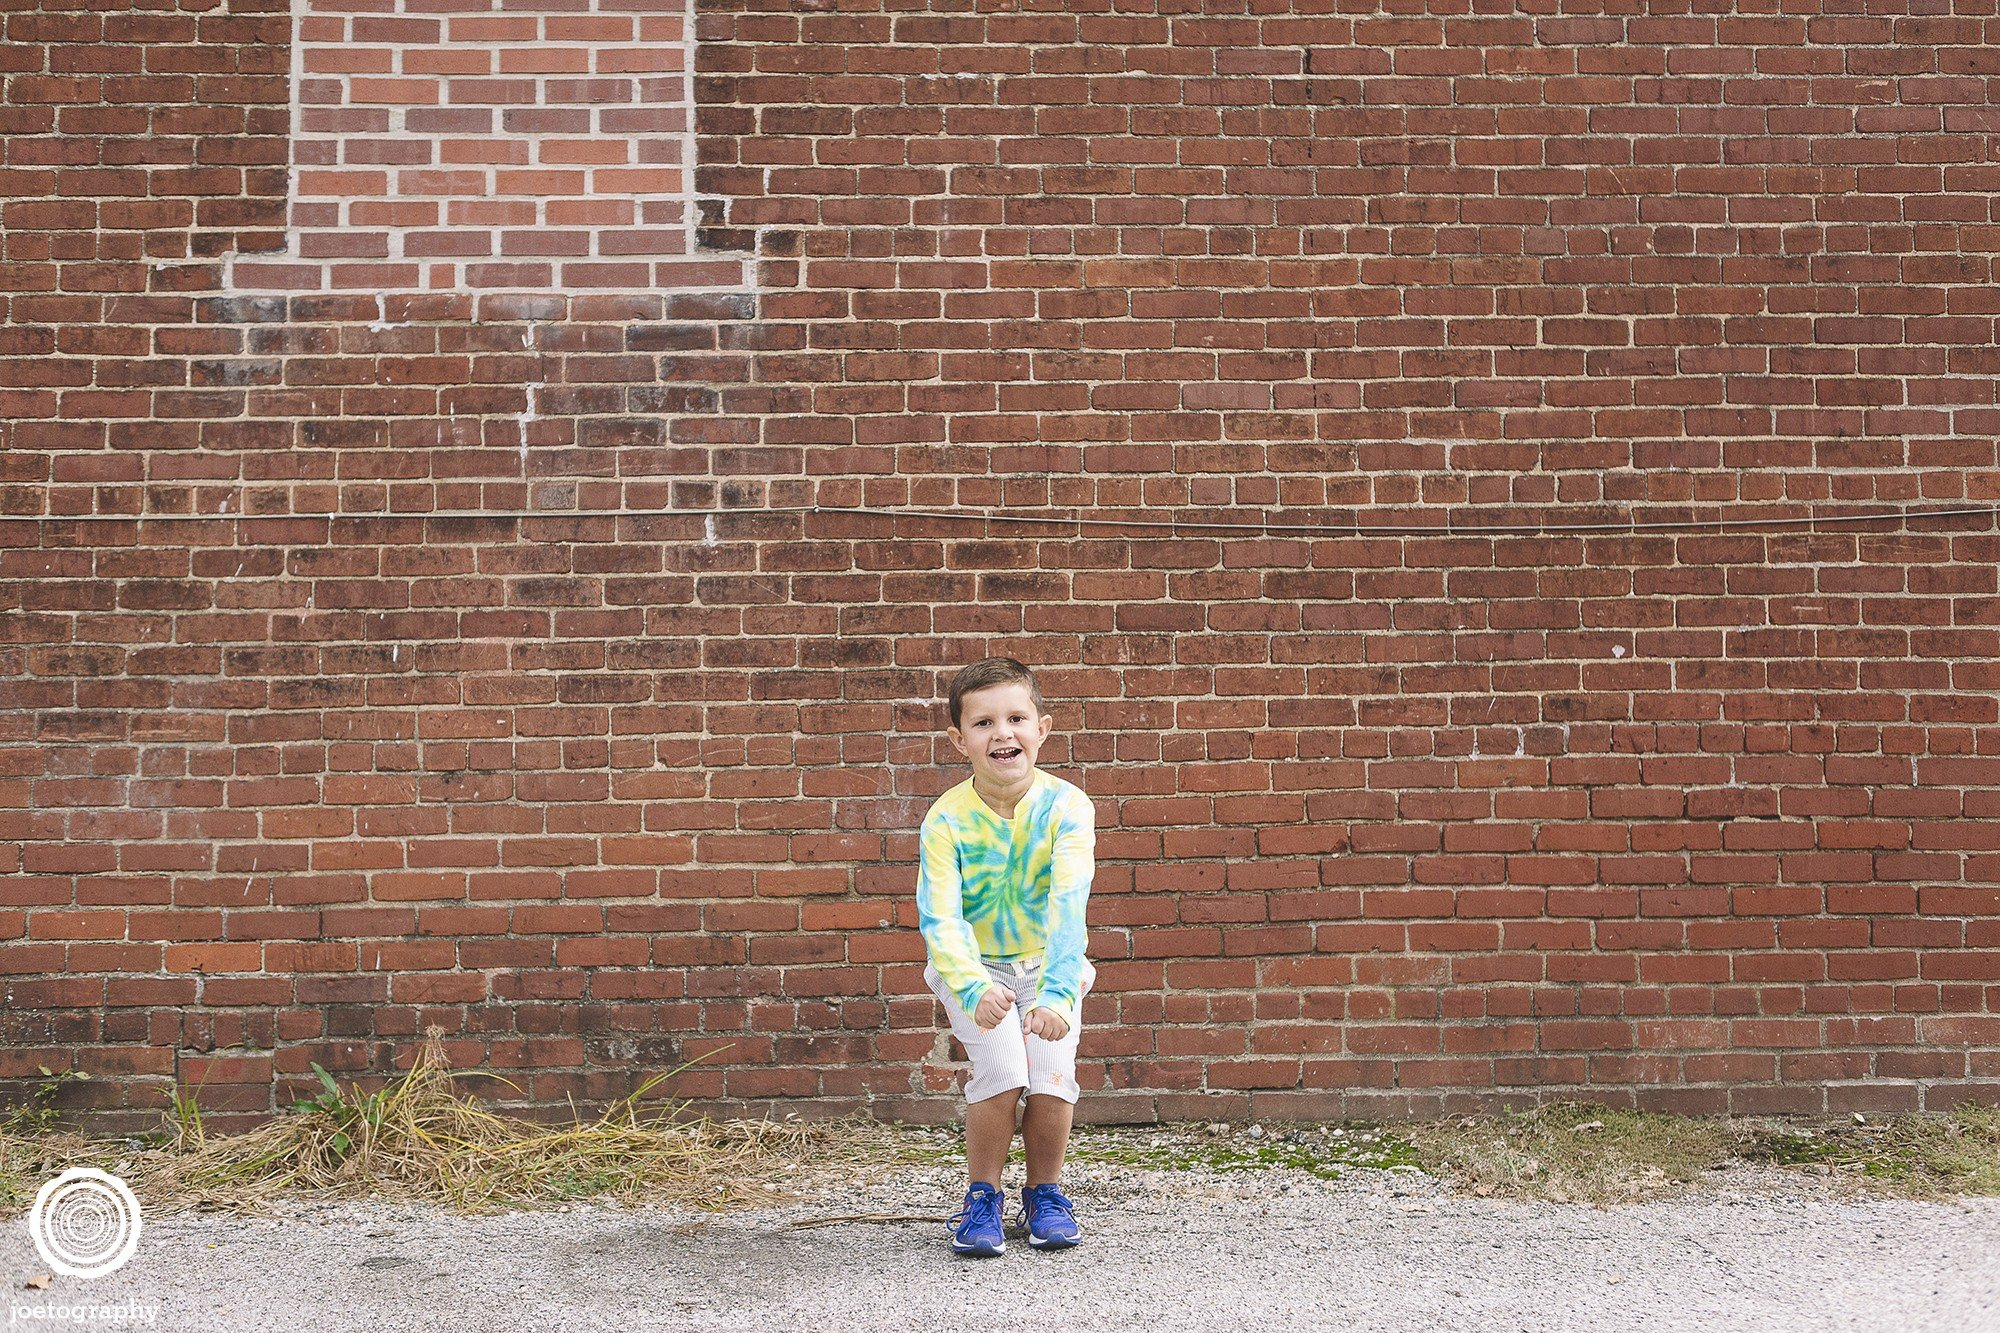 Riffle Child Portrait Session | Zionsville, Indiana - 11